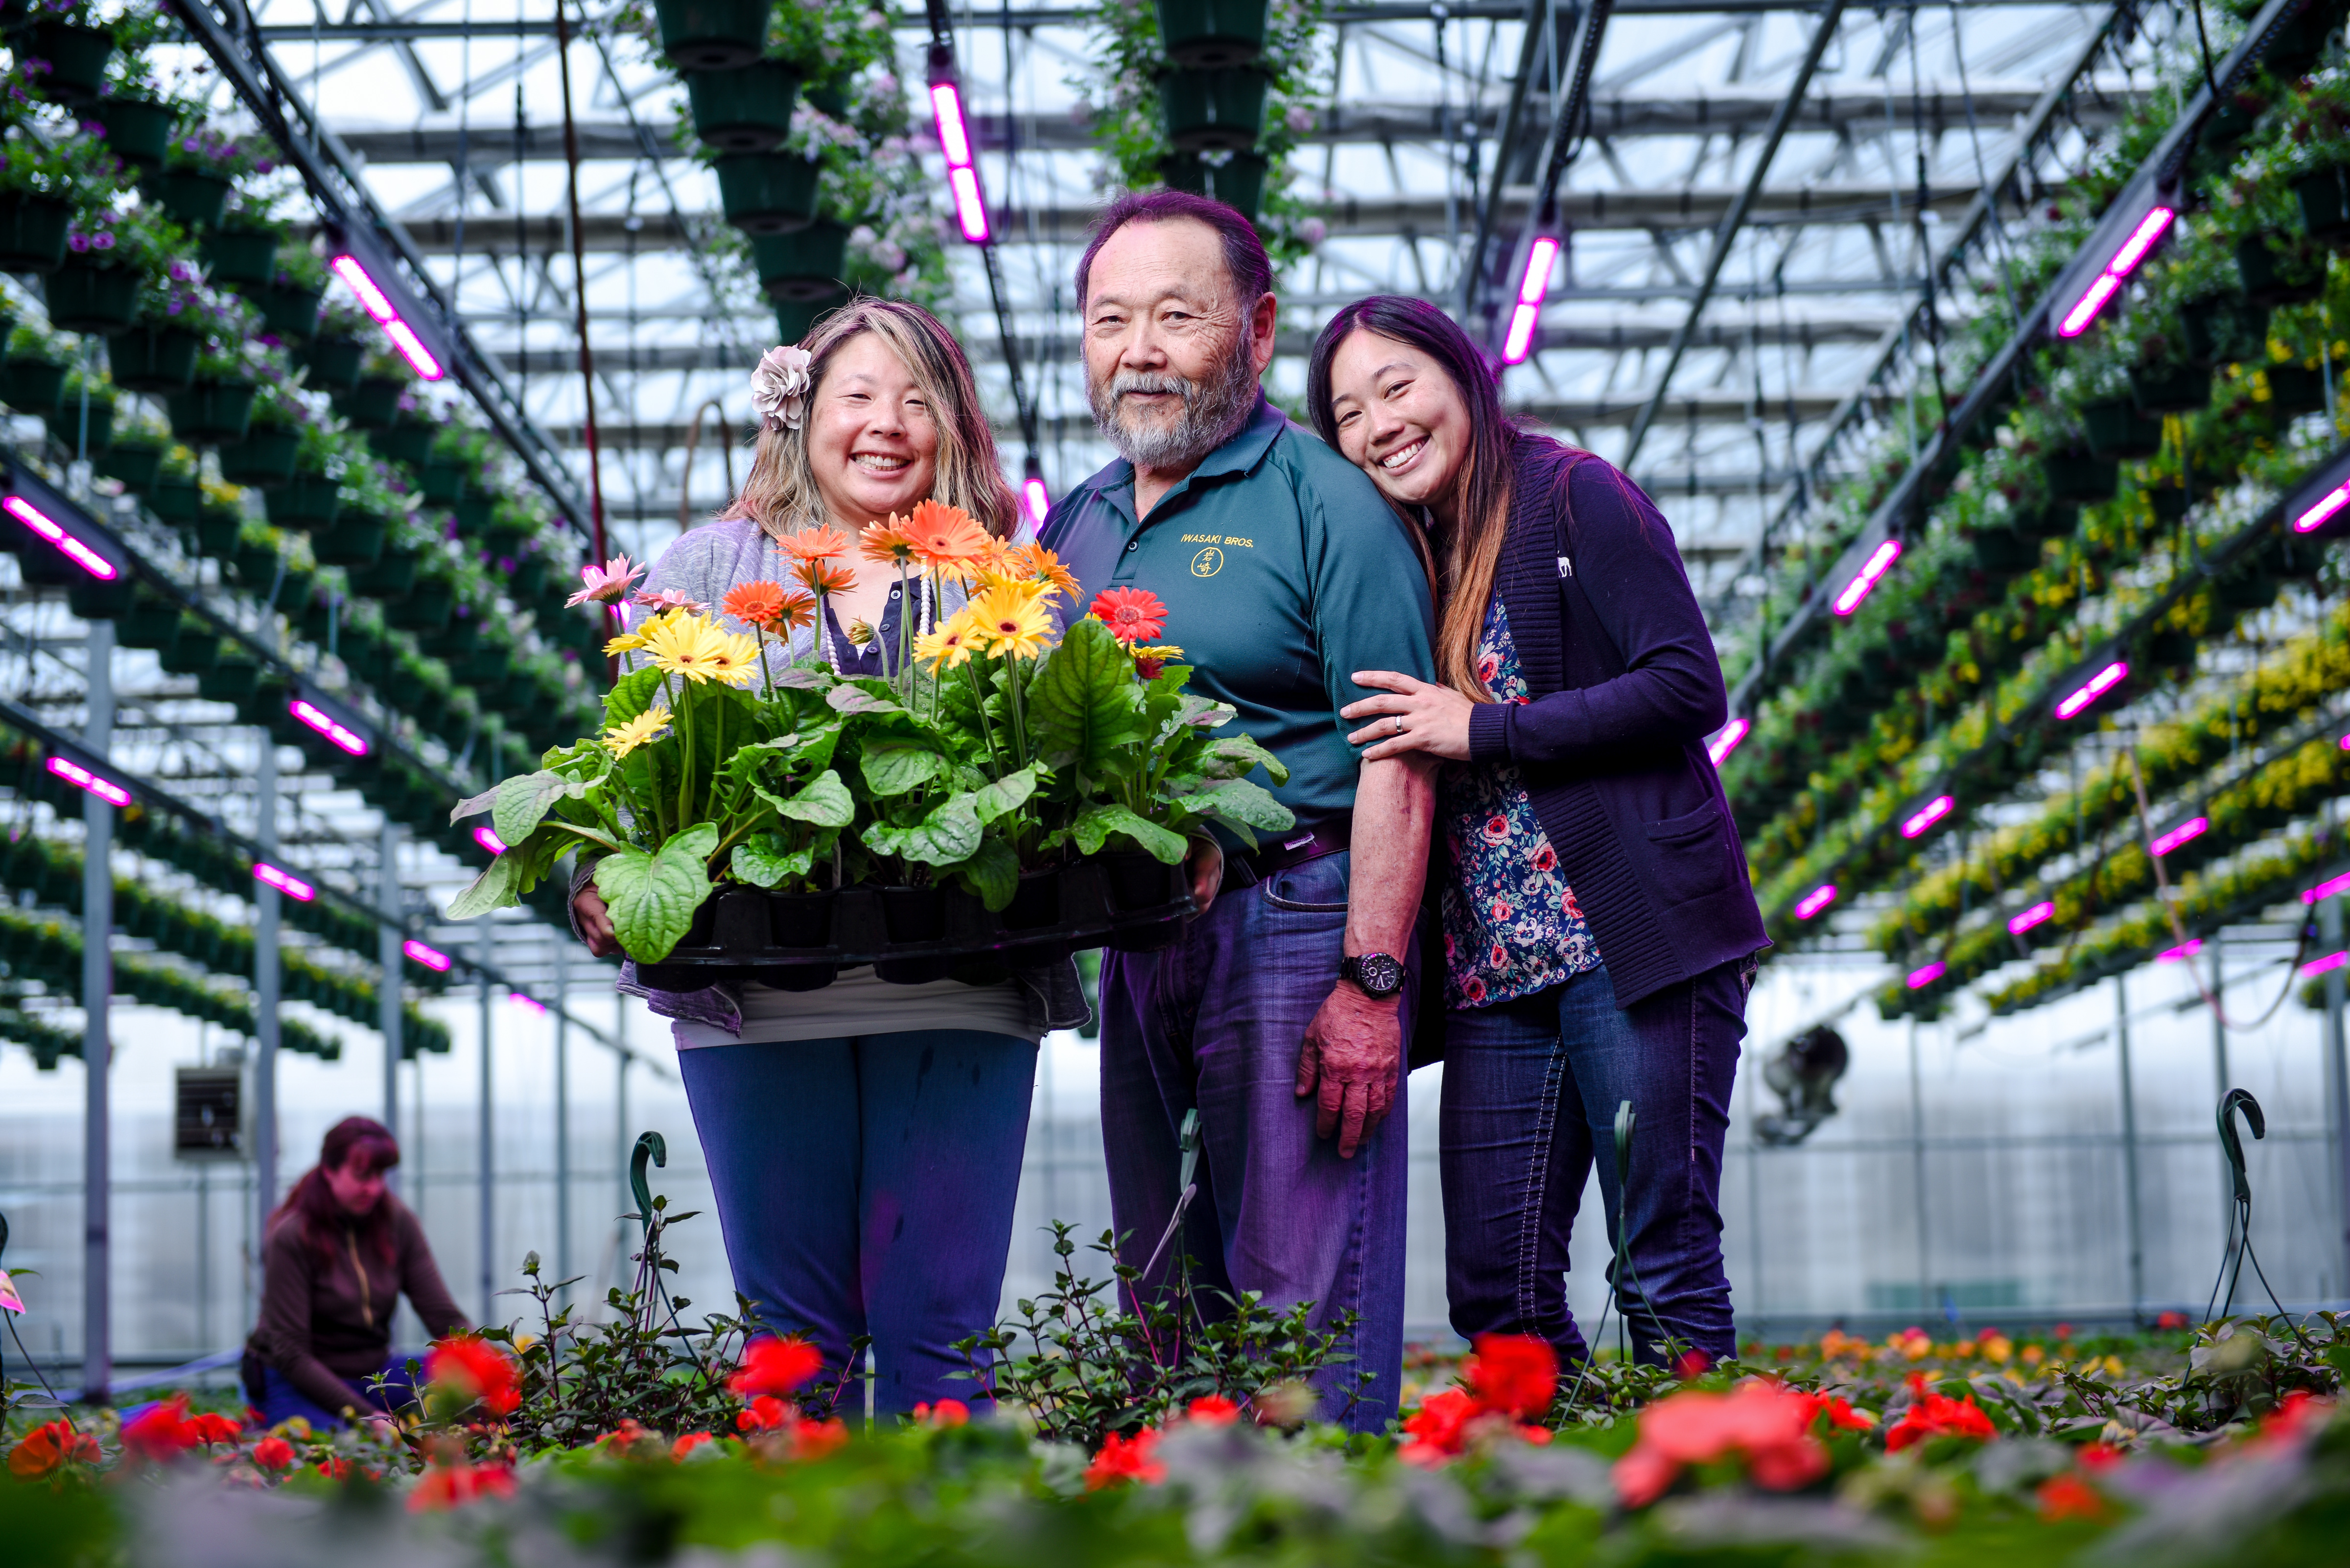 Signify to deliver horticulture LEDs faster to customers in North America to address fast-growing demand